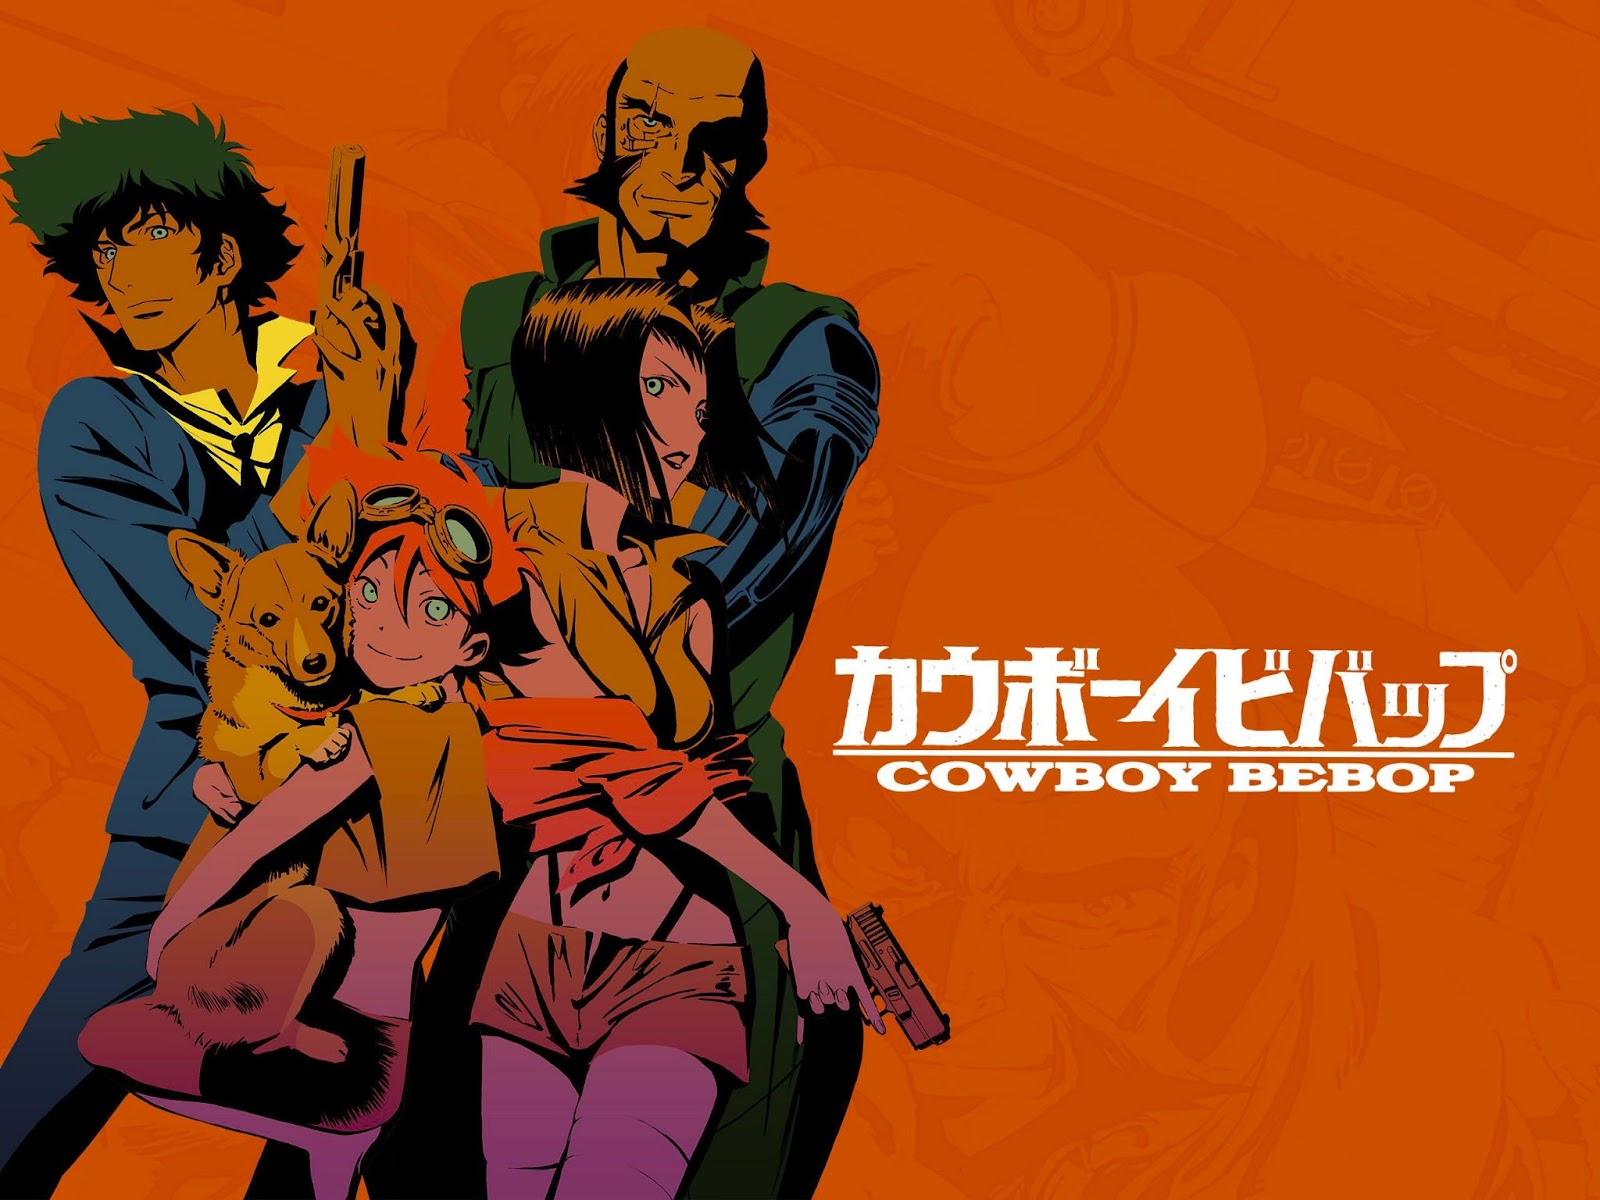 Top 10 Cyberpunk Anime Masterpieces That you Need to Watch - Cowboy Bebop